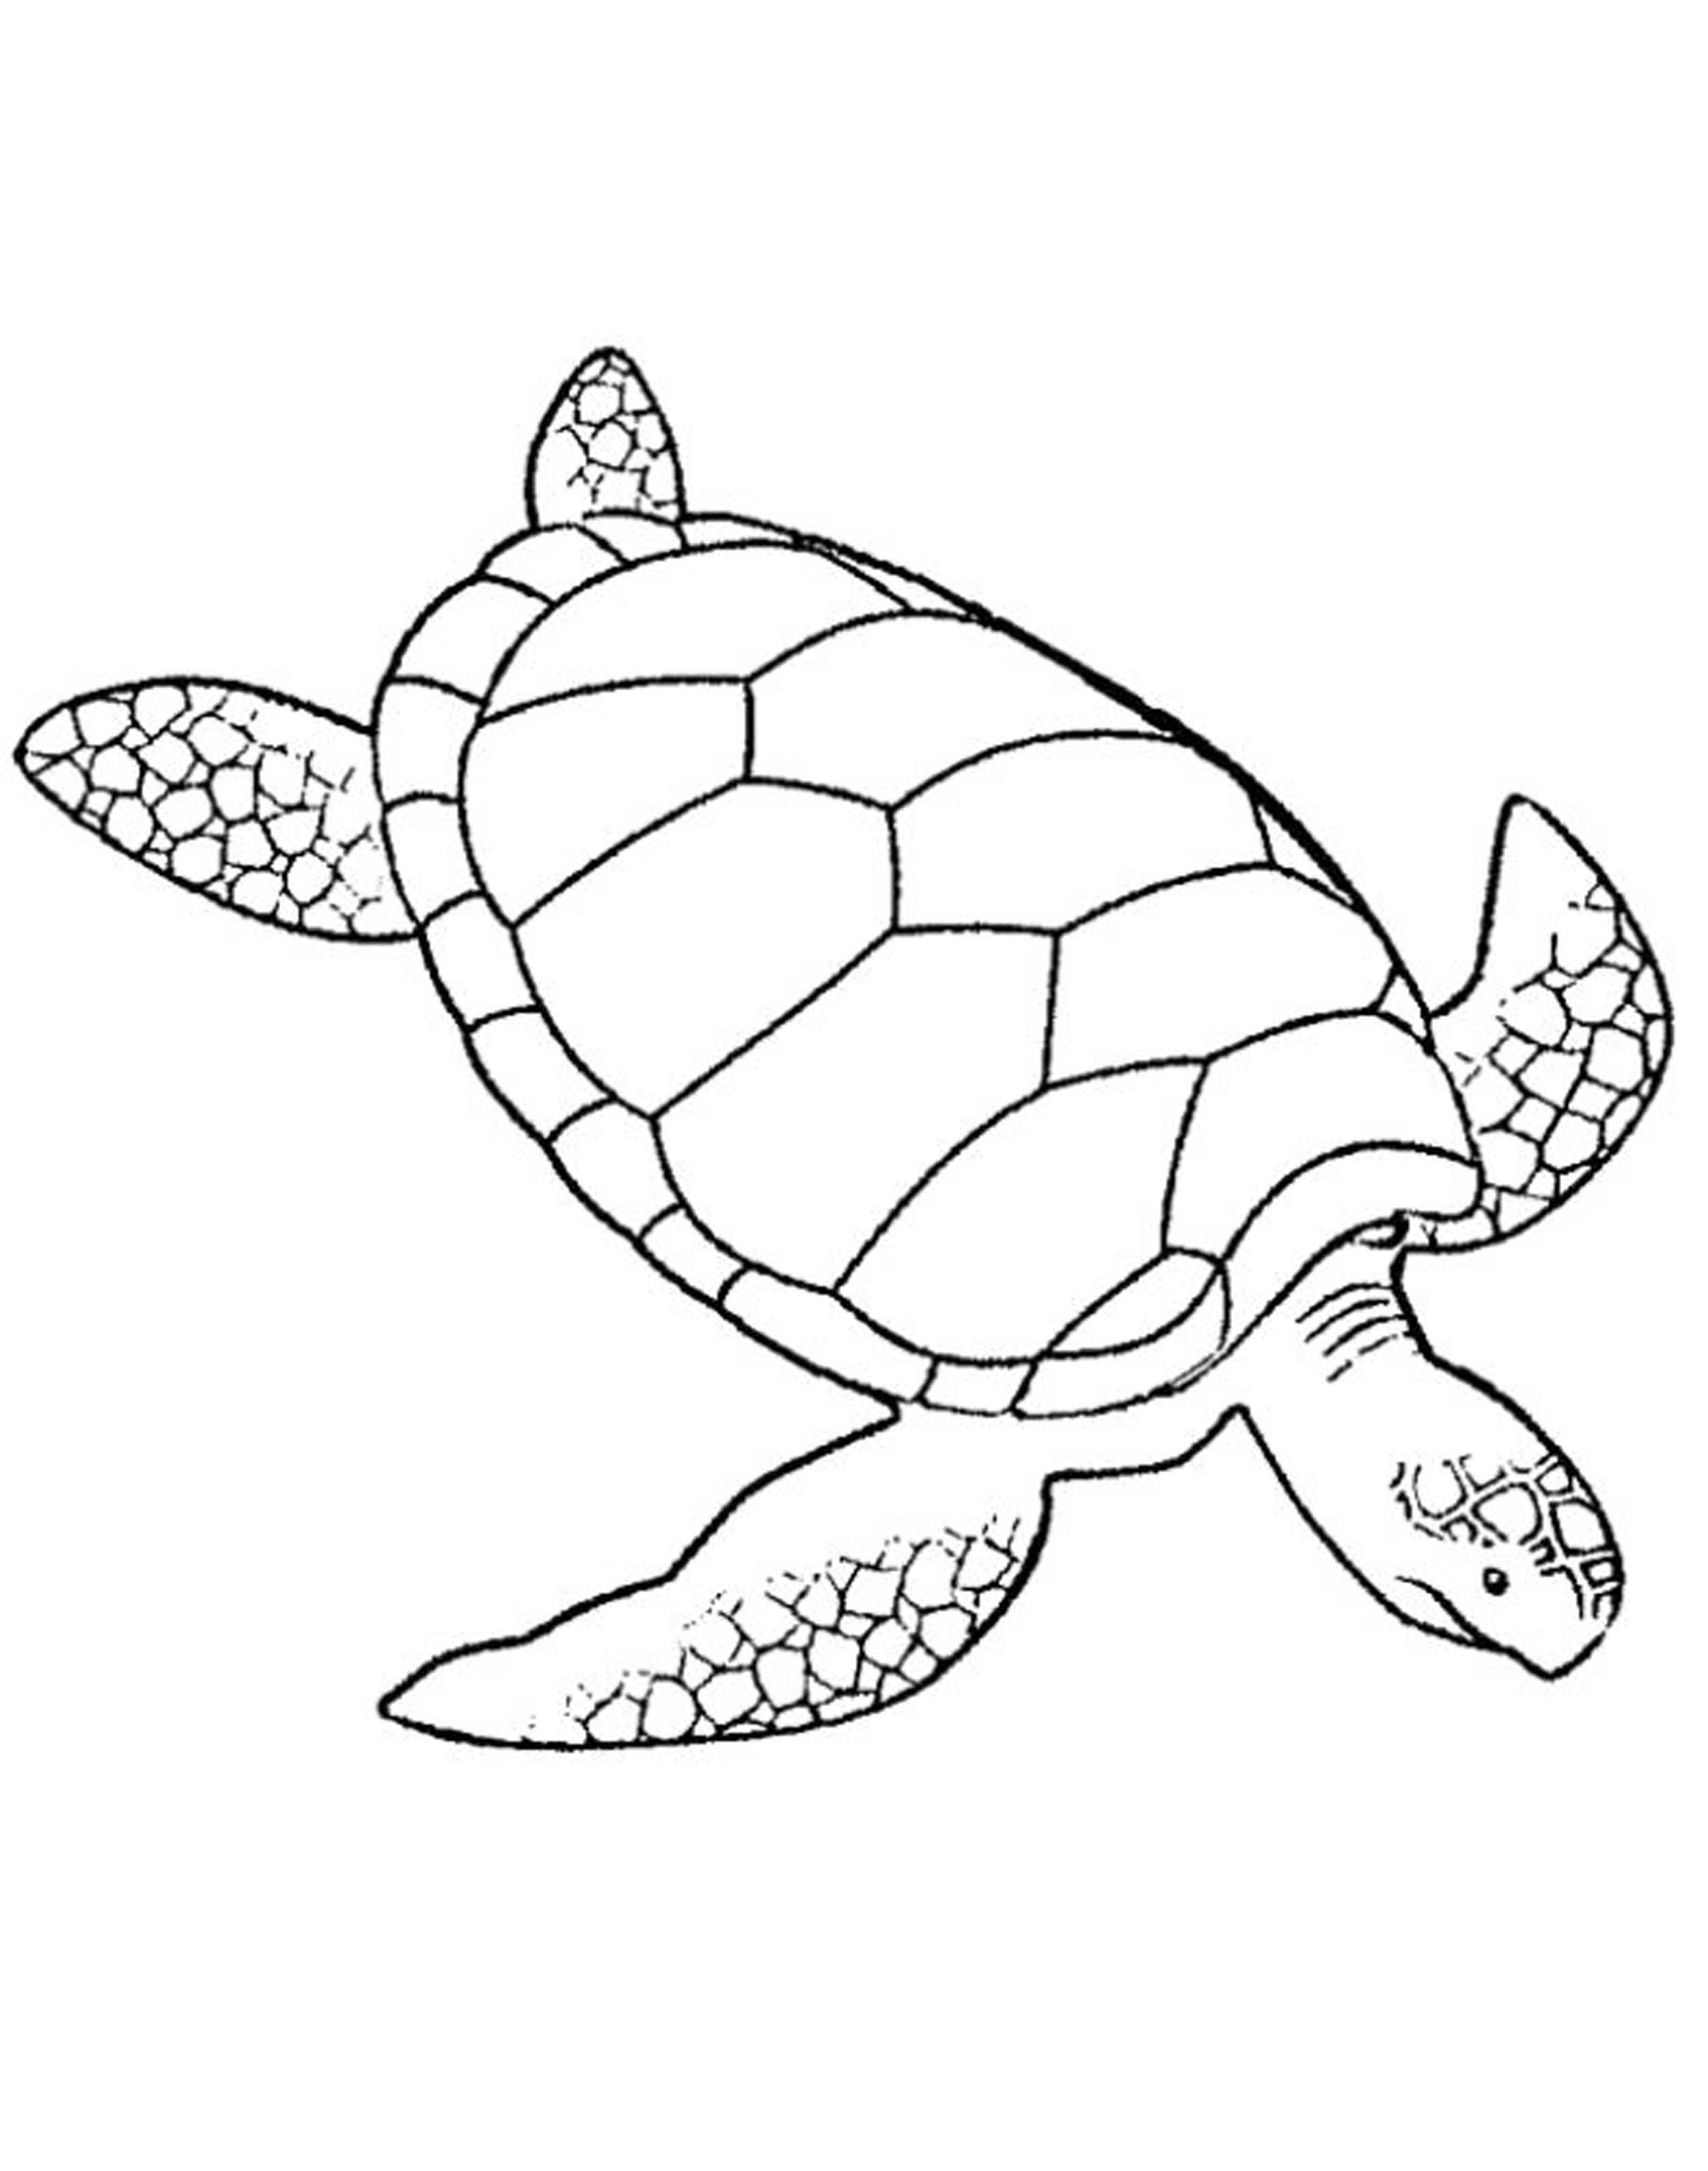 turtle coloring pictures to print turtles to download for free turtles kids coloring pages to print coloring turtle pictures